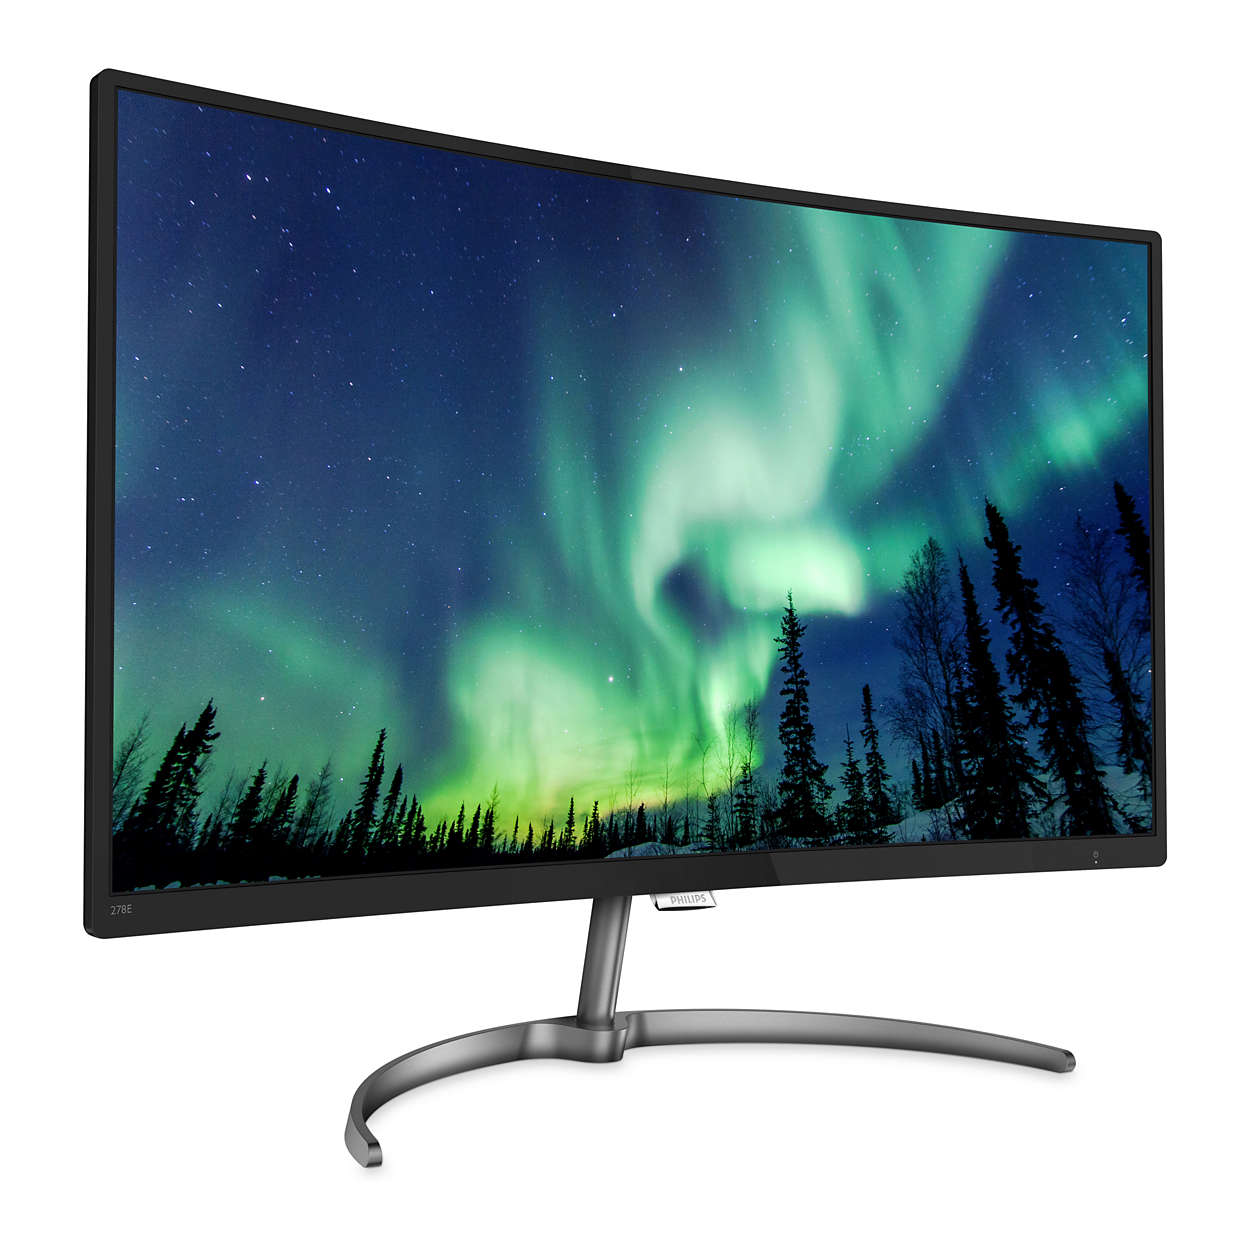 Монитор Philips 27'' Black 278E8QJAB (00/01) монитор philips 278e8qjab 27